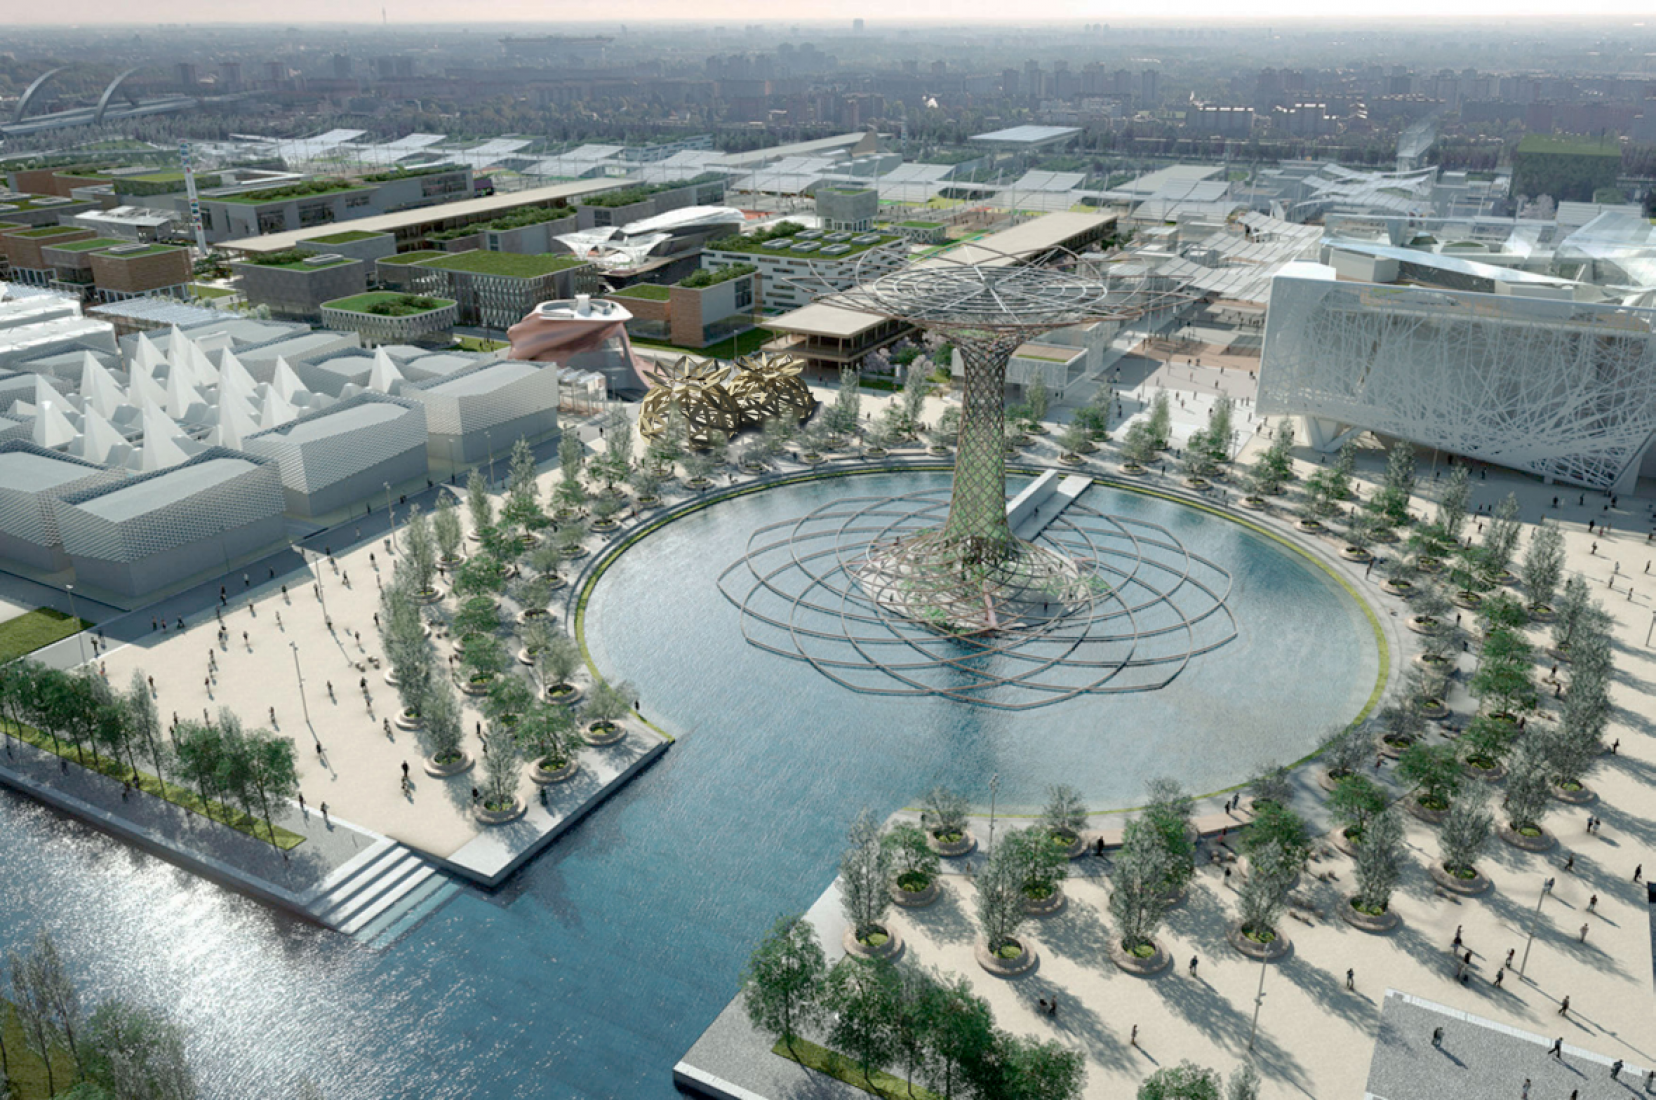 Overview. Dome's design by EMBT for COPAGRI within Expo Milano 2015. Image © EMBT.